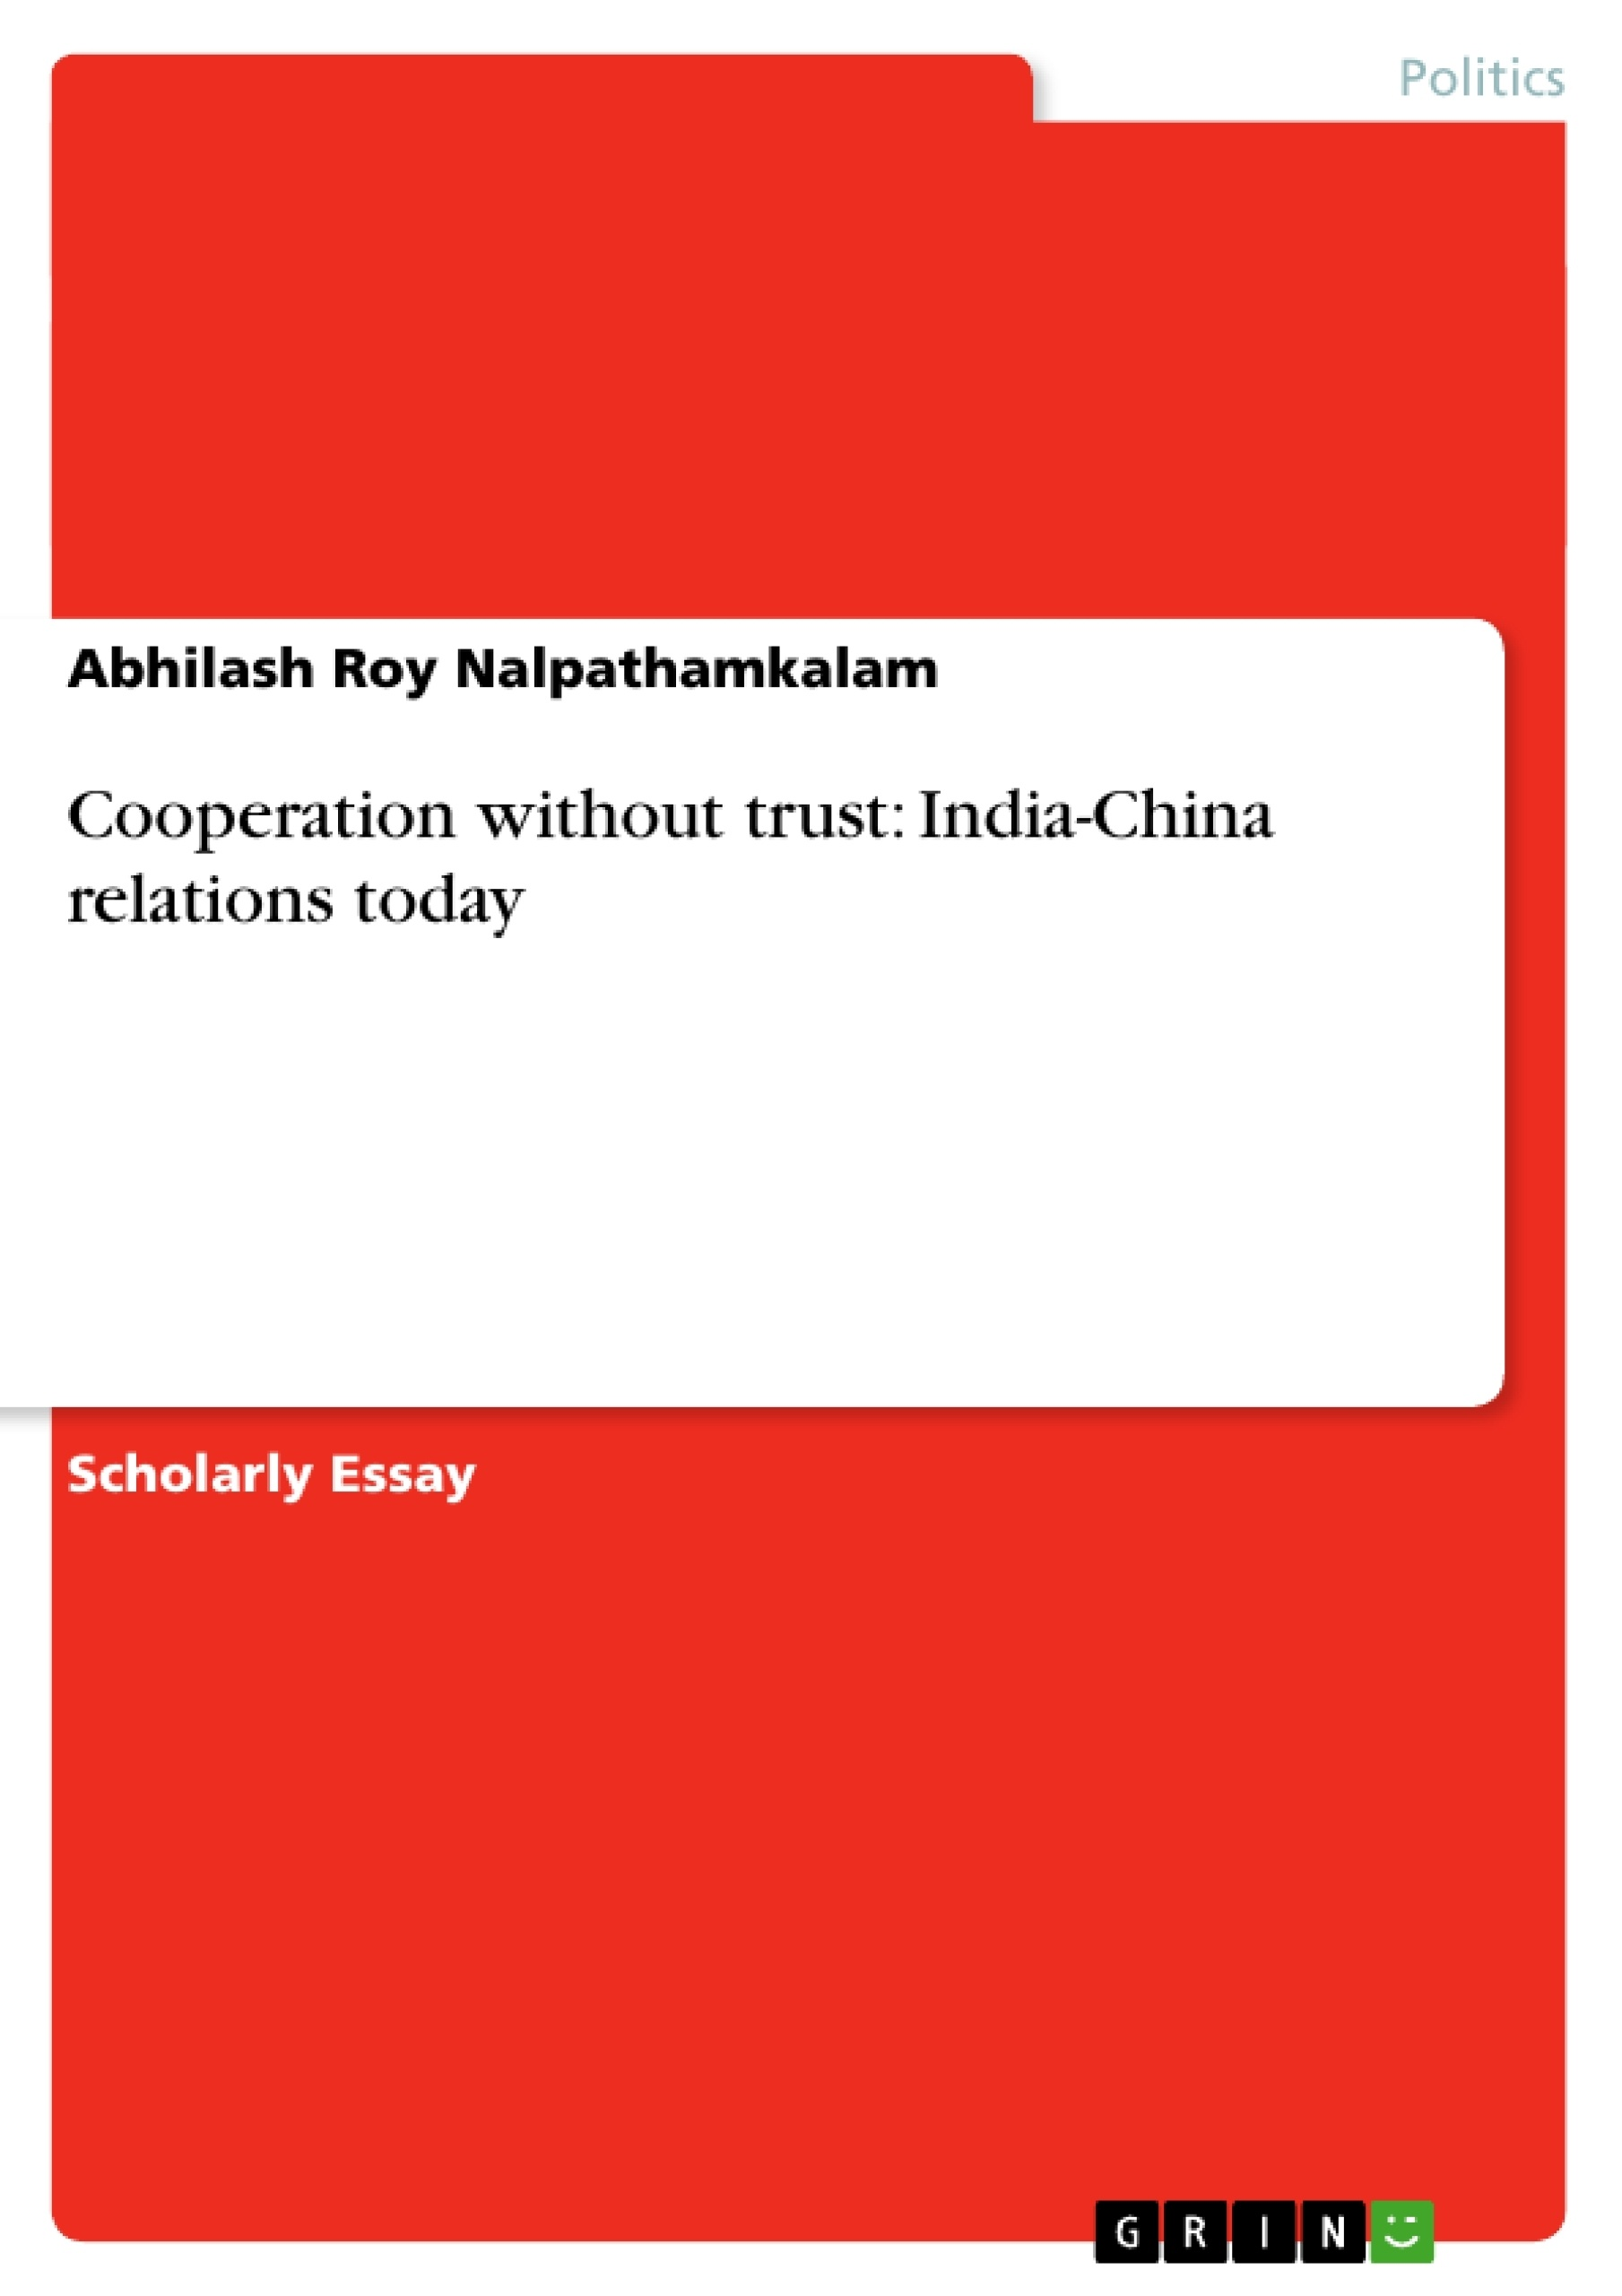 Title: Cooperation without trust: India-China relations today